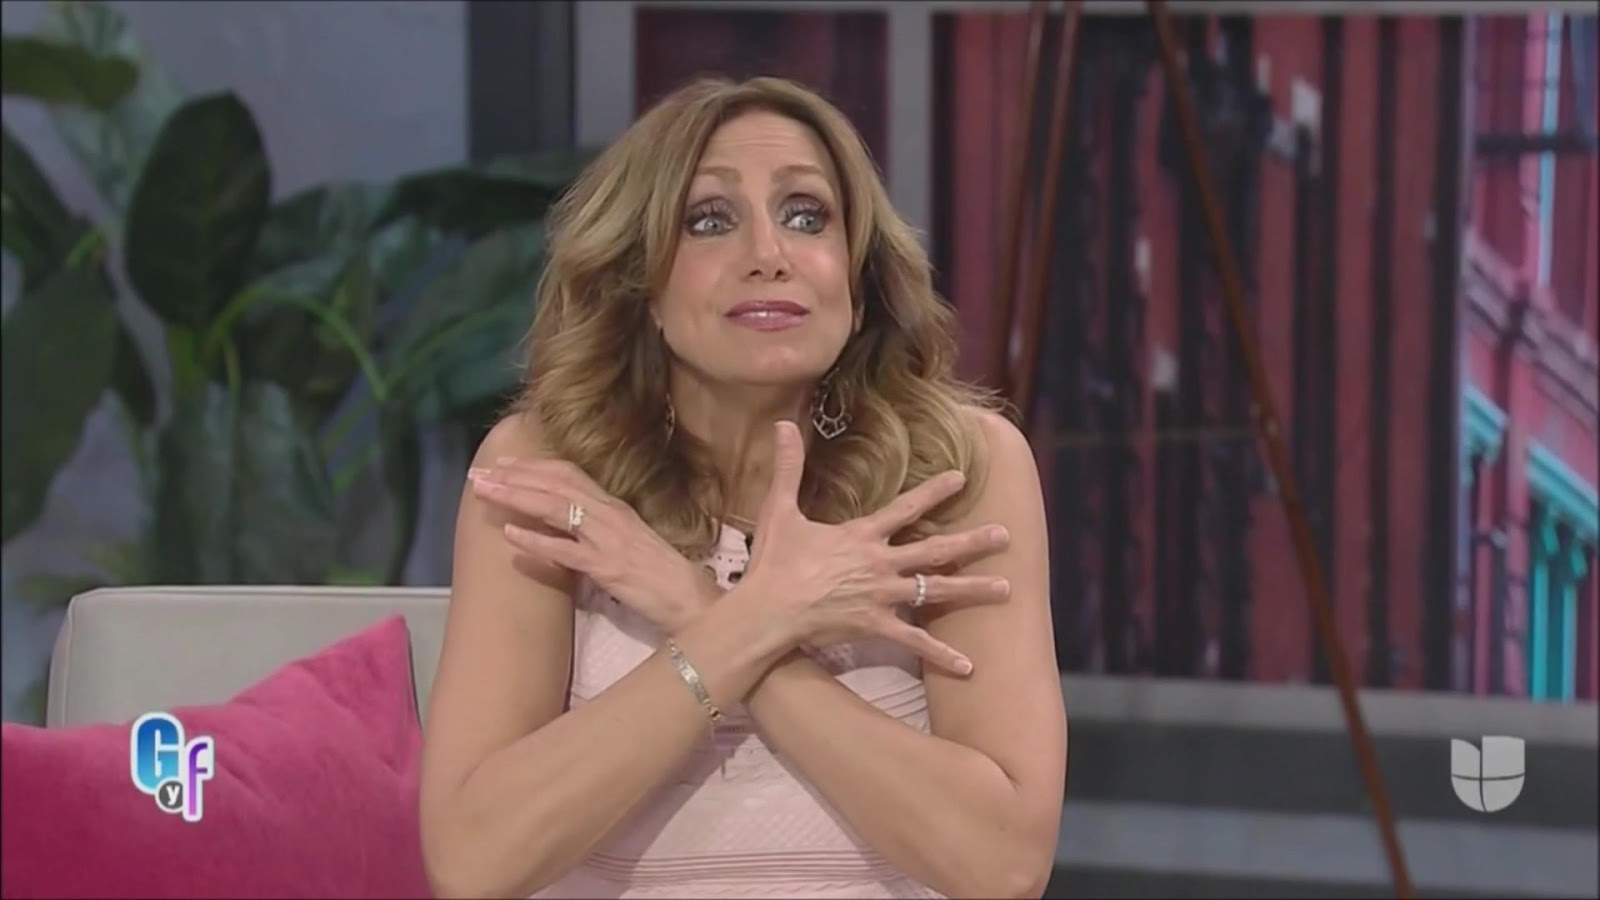 Lili estefan stripped her legs in this white shorts next to her pool